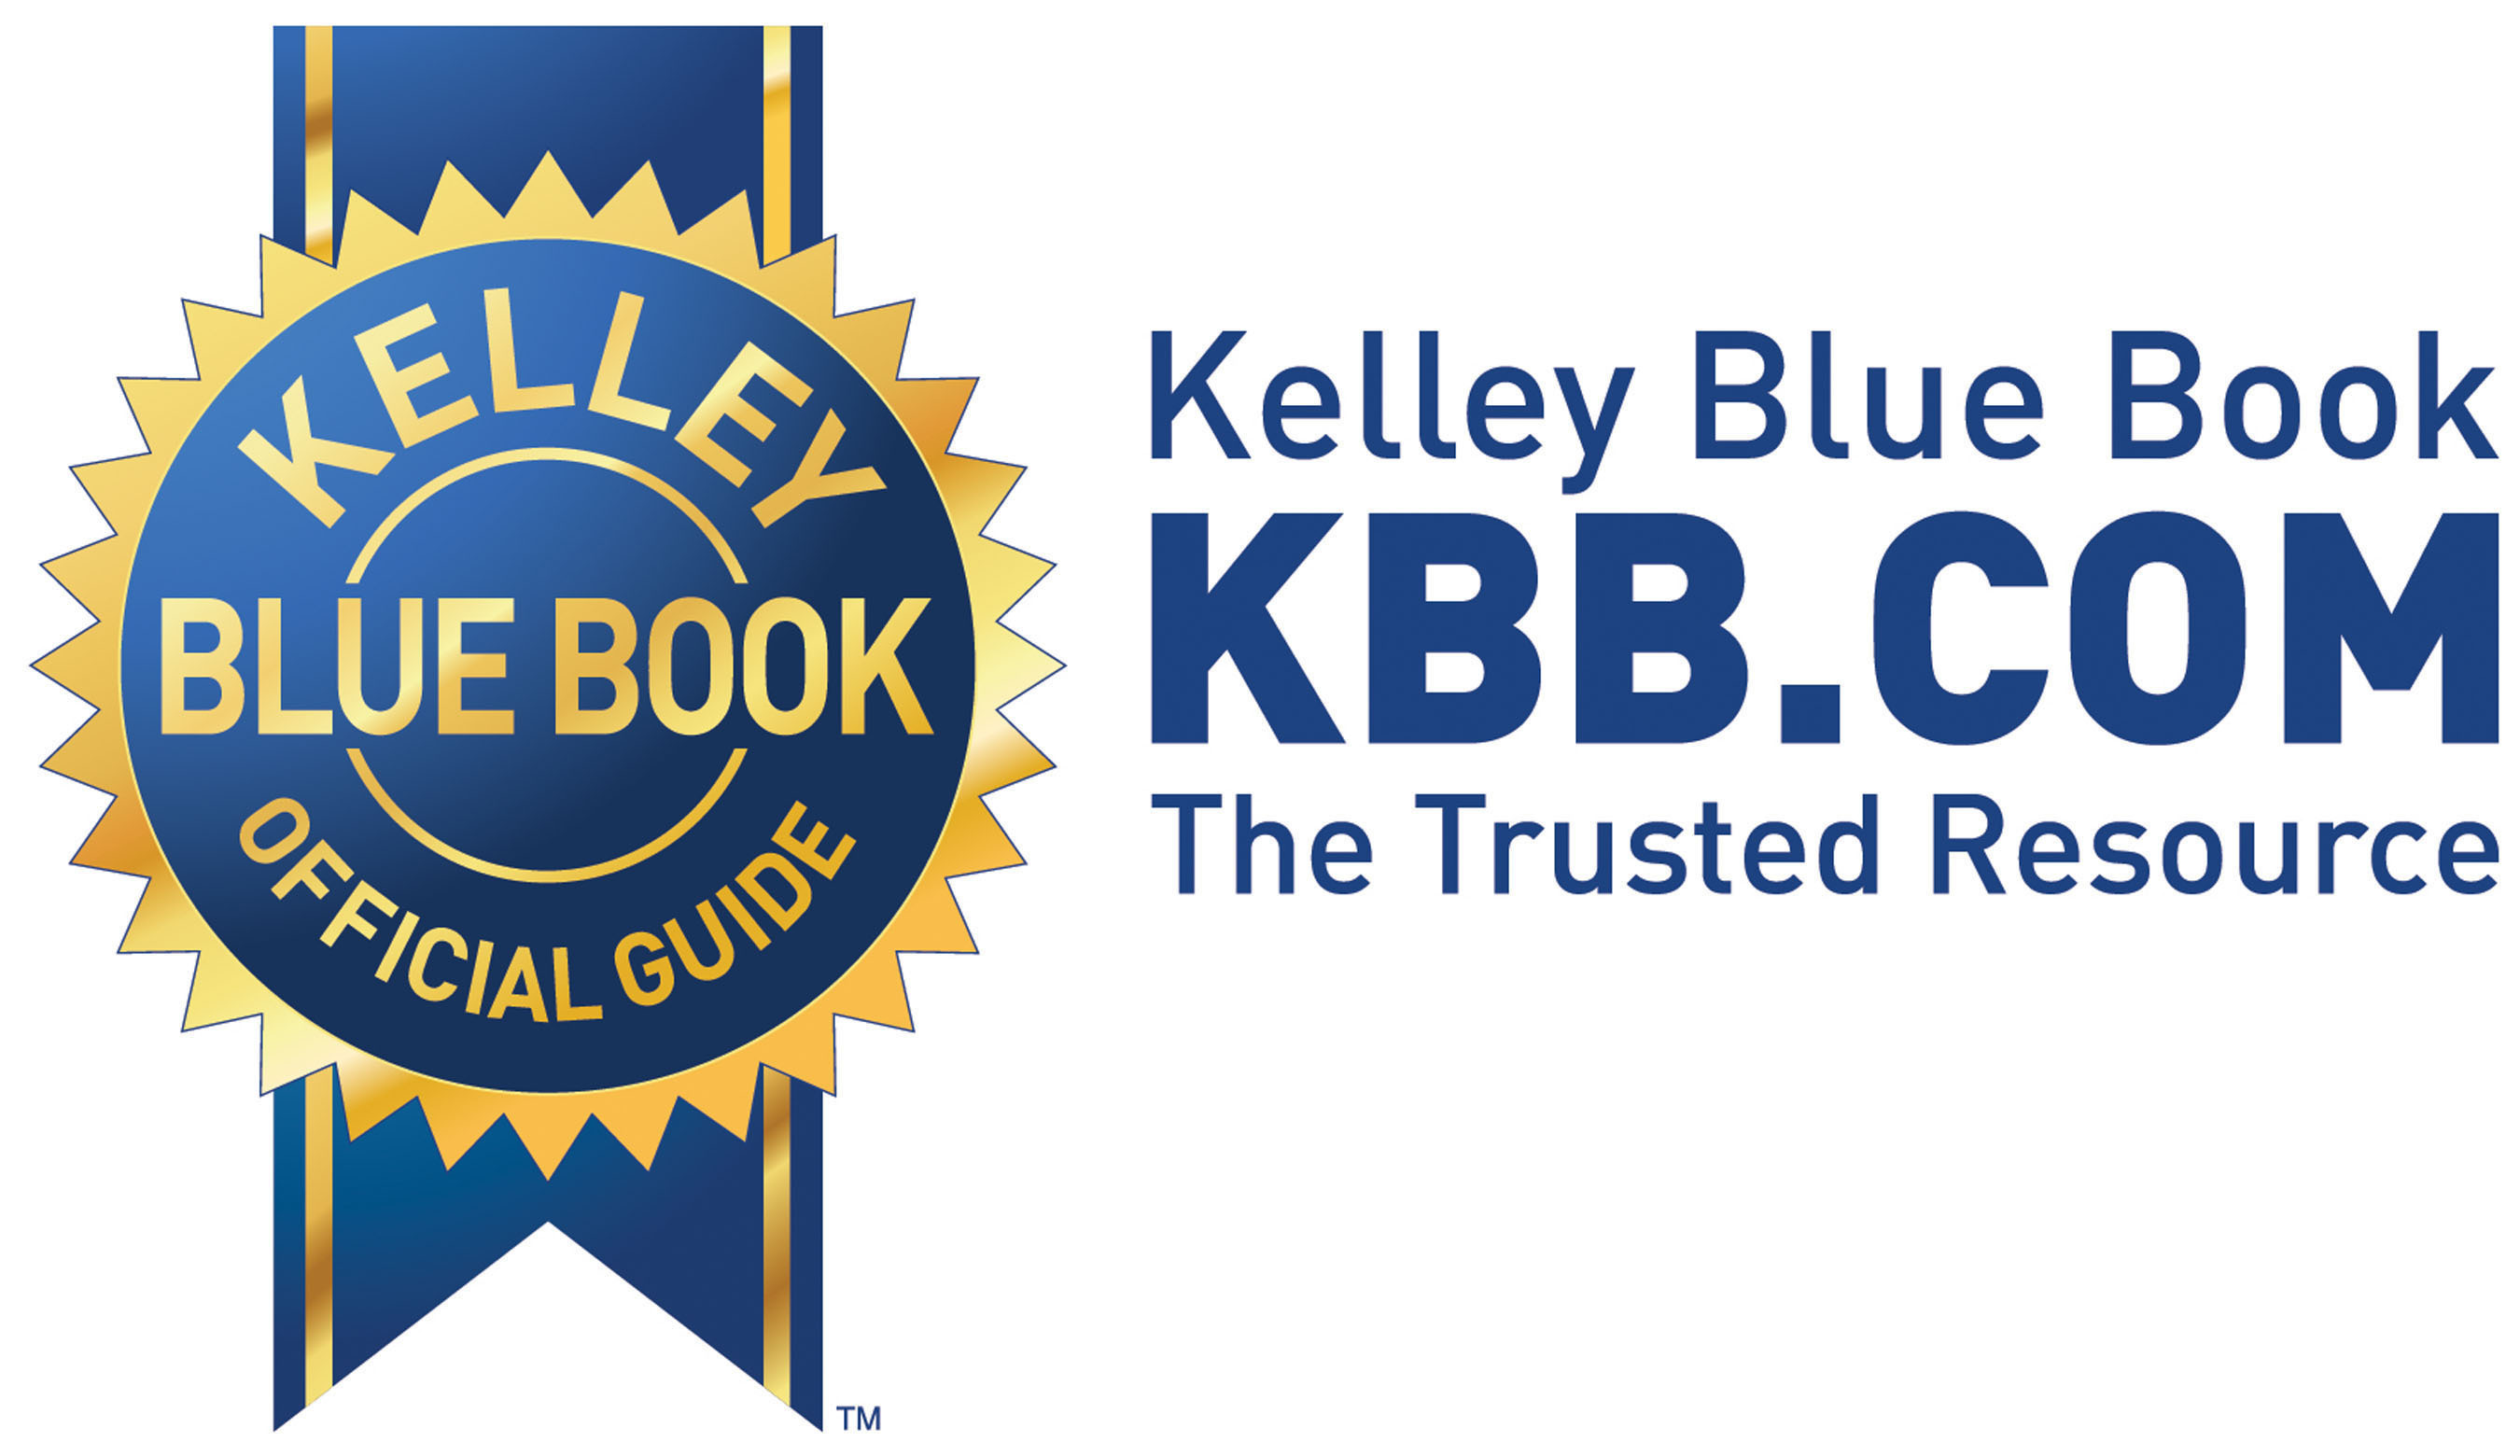 Awesome Kellybluebook.com Used Car Values